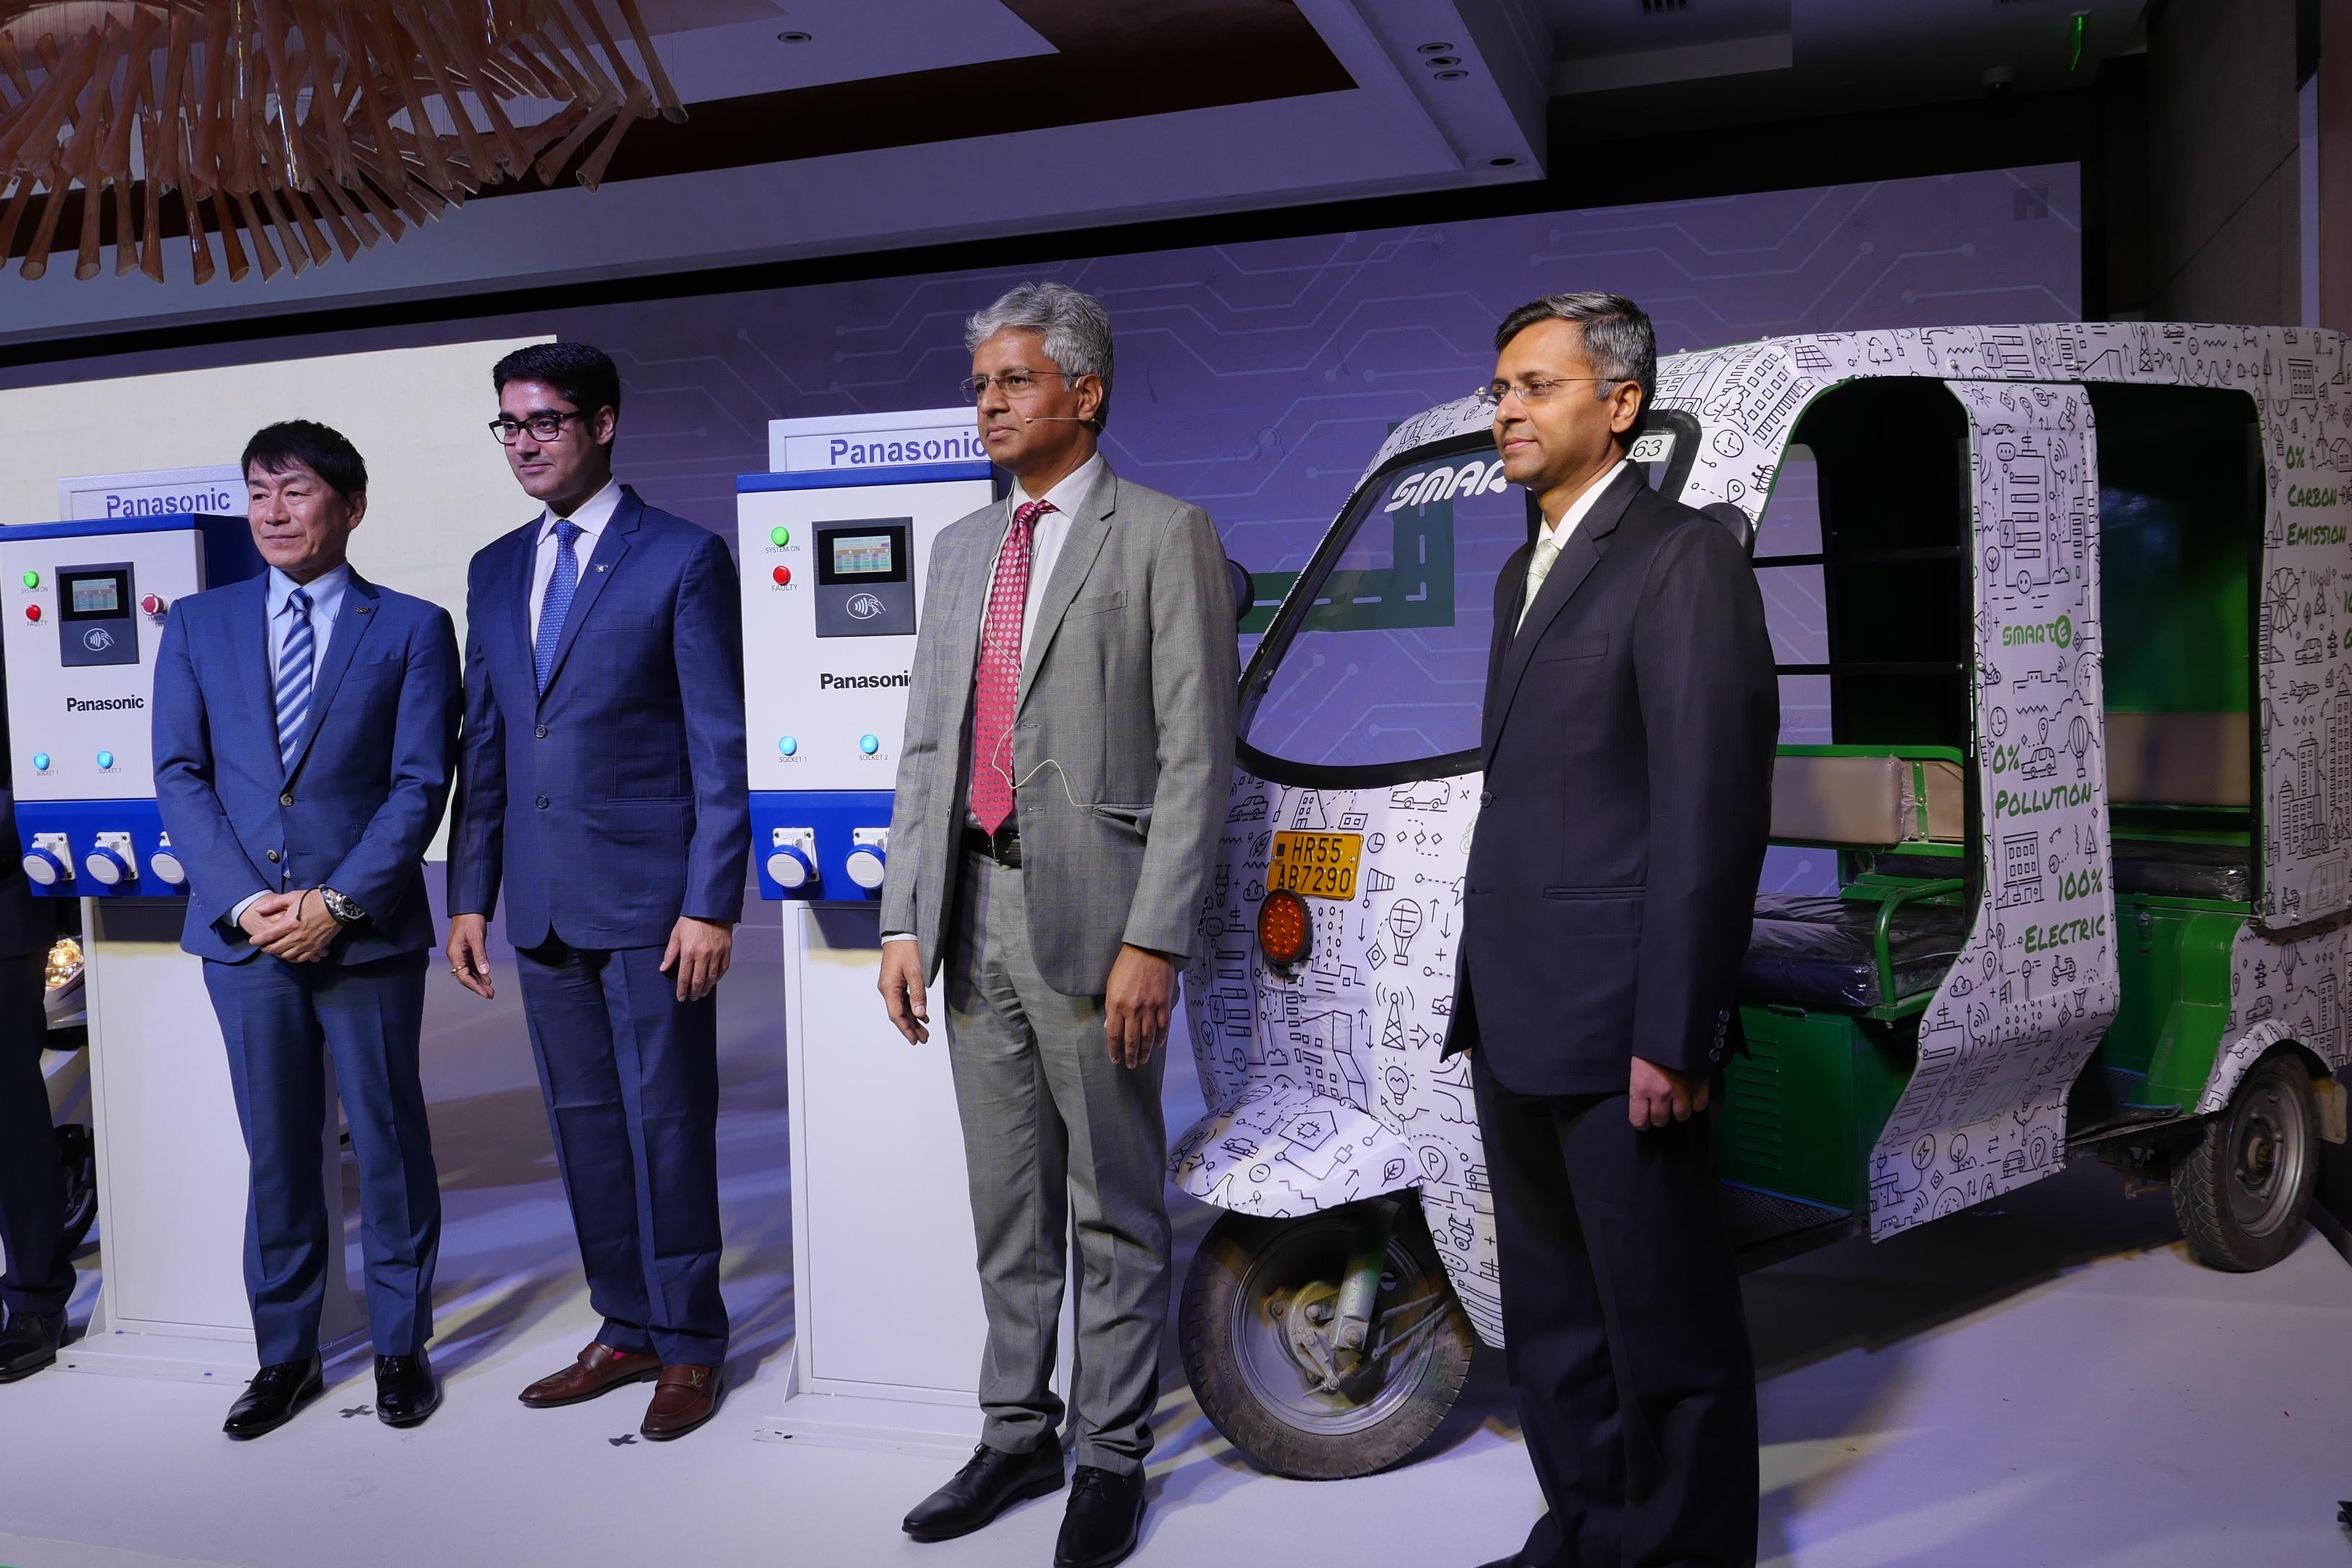 photo: Panasonic announced the launch of Nymbus. (From left) Yasumichi Murase, director, Lastmile Hub, Panasonic, Manish Sharma, president and CEO Panasonic India, Atul Arya, Head Energy Systems Division, Panasonic India, Goldie Srivastava, co-founder and CEO, SmartE